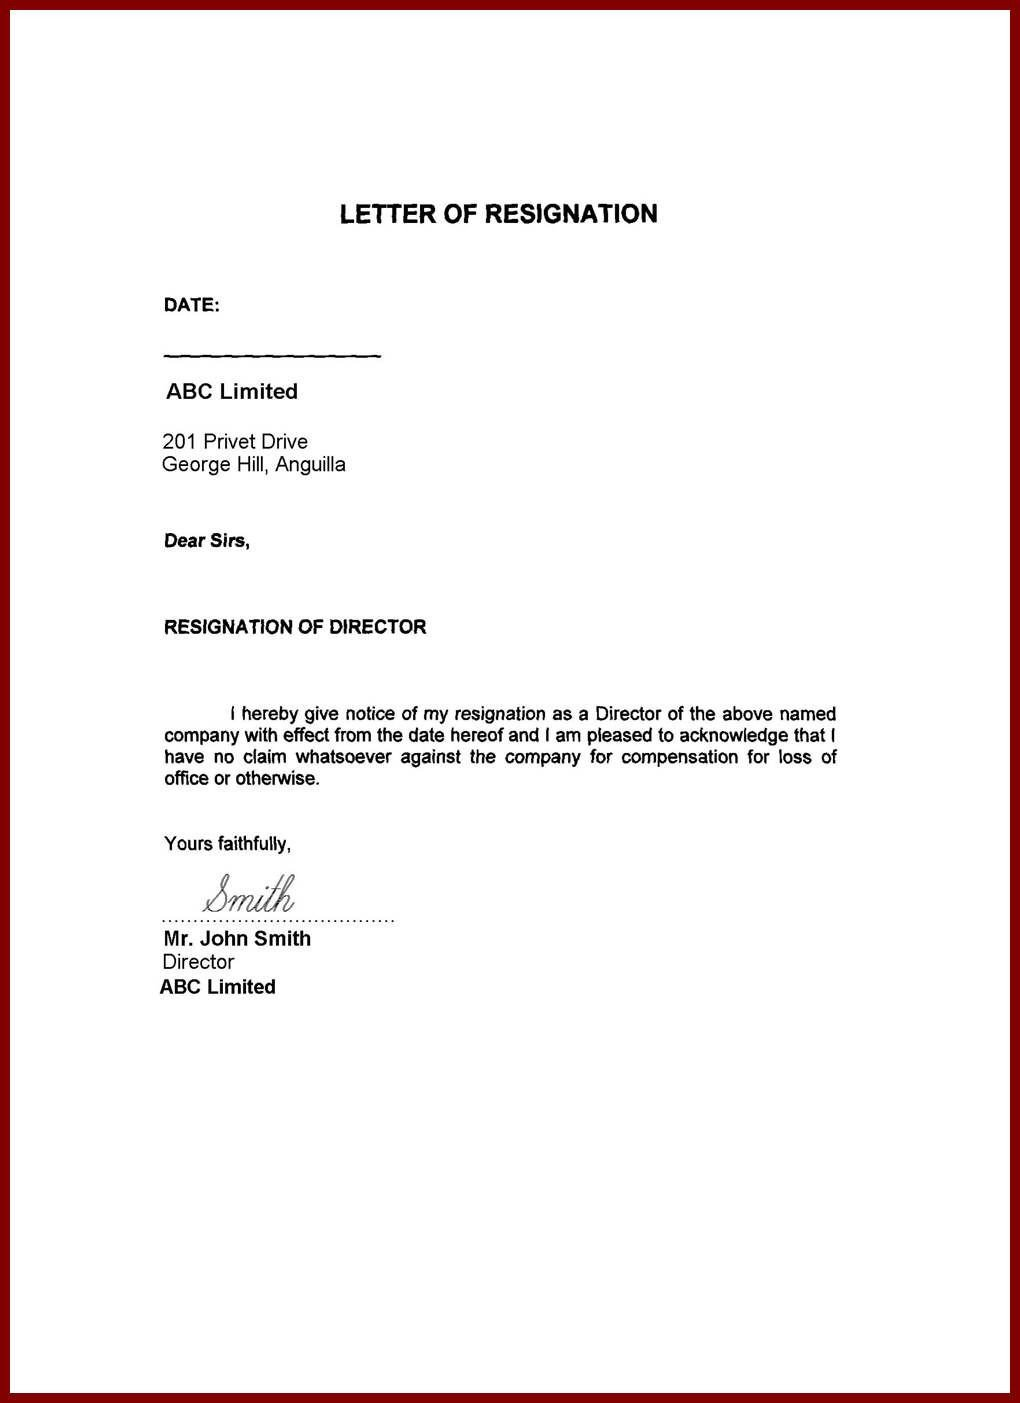 Letter Of Resignation Template Word Image Result for Resignation Letter Word format Family